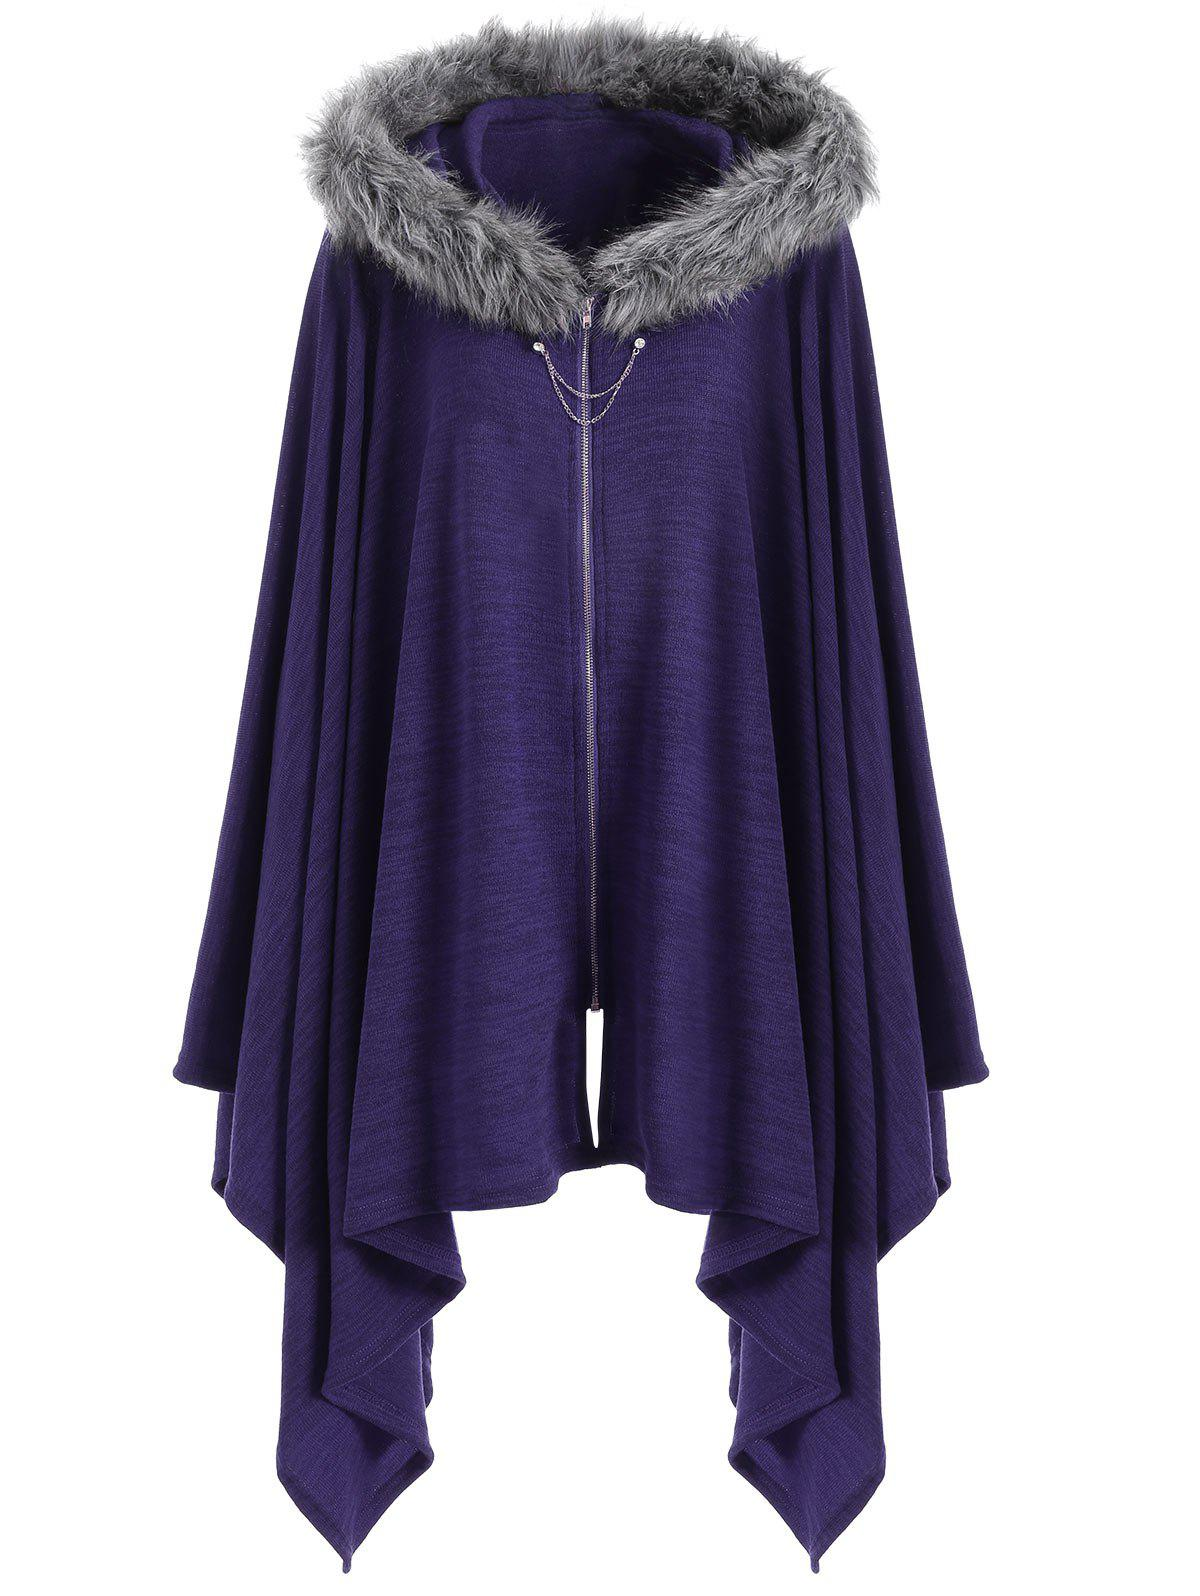 Faux Fur Insert Plus Size Asymmetric Cape CoatWOMEN<br><br>Size: 4XL; Color: PURPLE; Clothes Type: Others; Material: Polyester,Spandex; Type: Wide-waisted; Shirt Length: Regular; Sleeve Length: Full; Collar: Hooded; Pattern Type: Solid; Style: Fashion; Season: Fall,Winter; Weight: 0.4700kg; Package Contents: 1 x Coat;